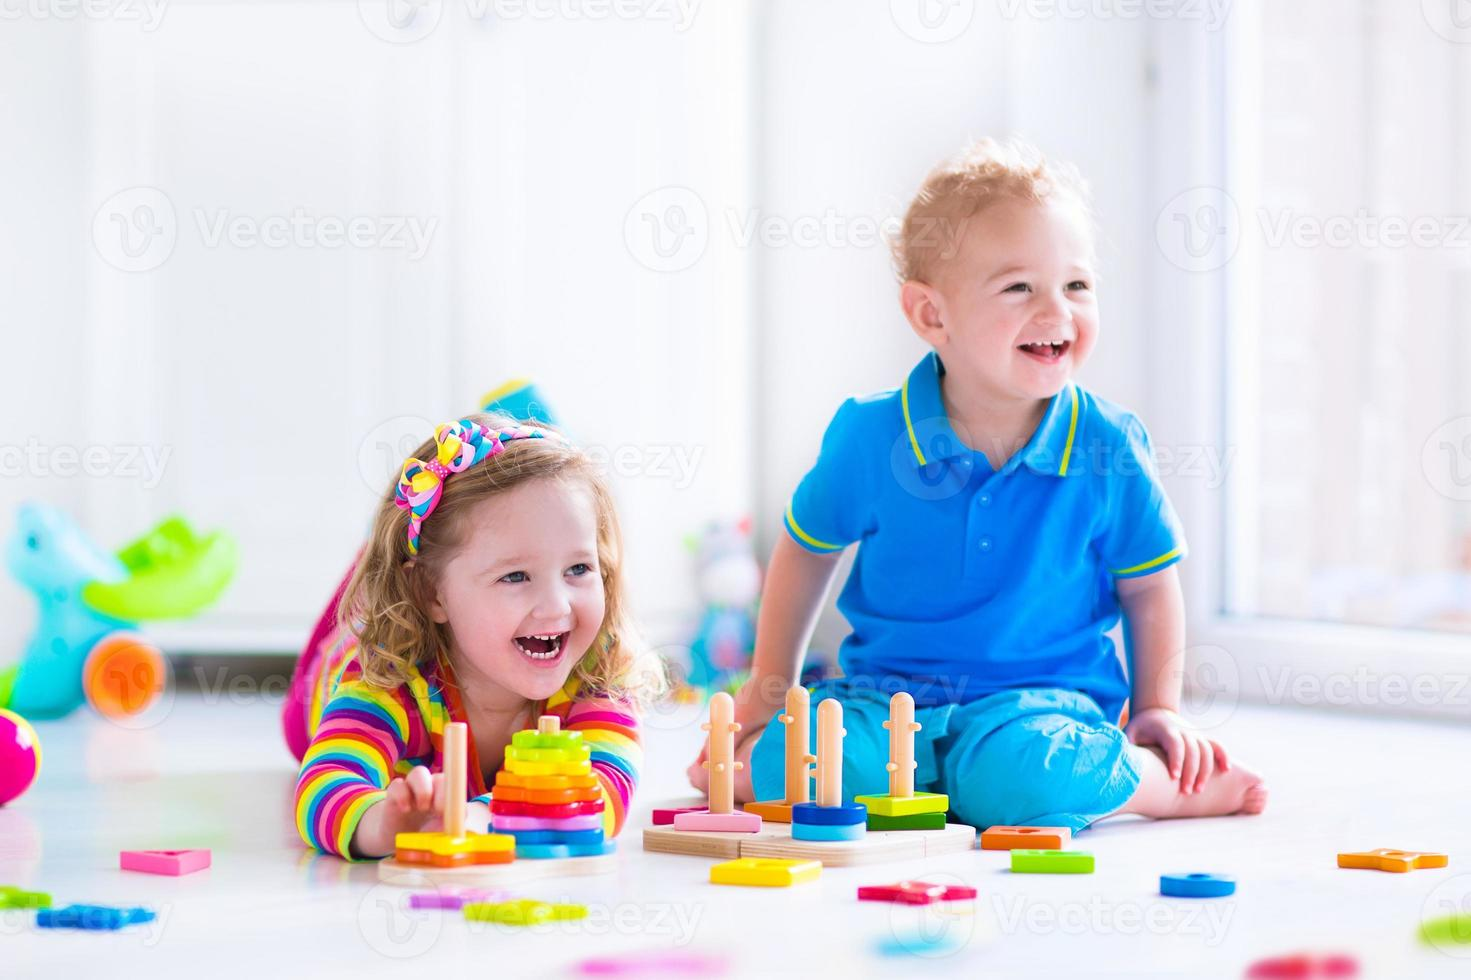 Cjildren playing with wooden toys photo